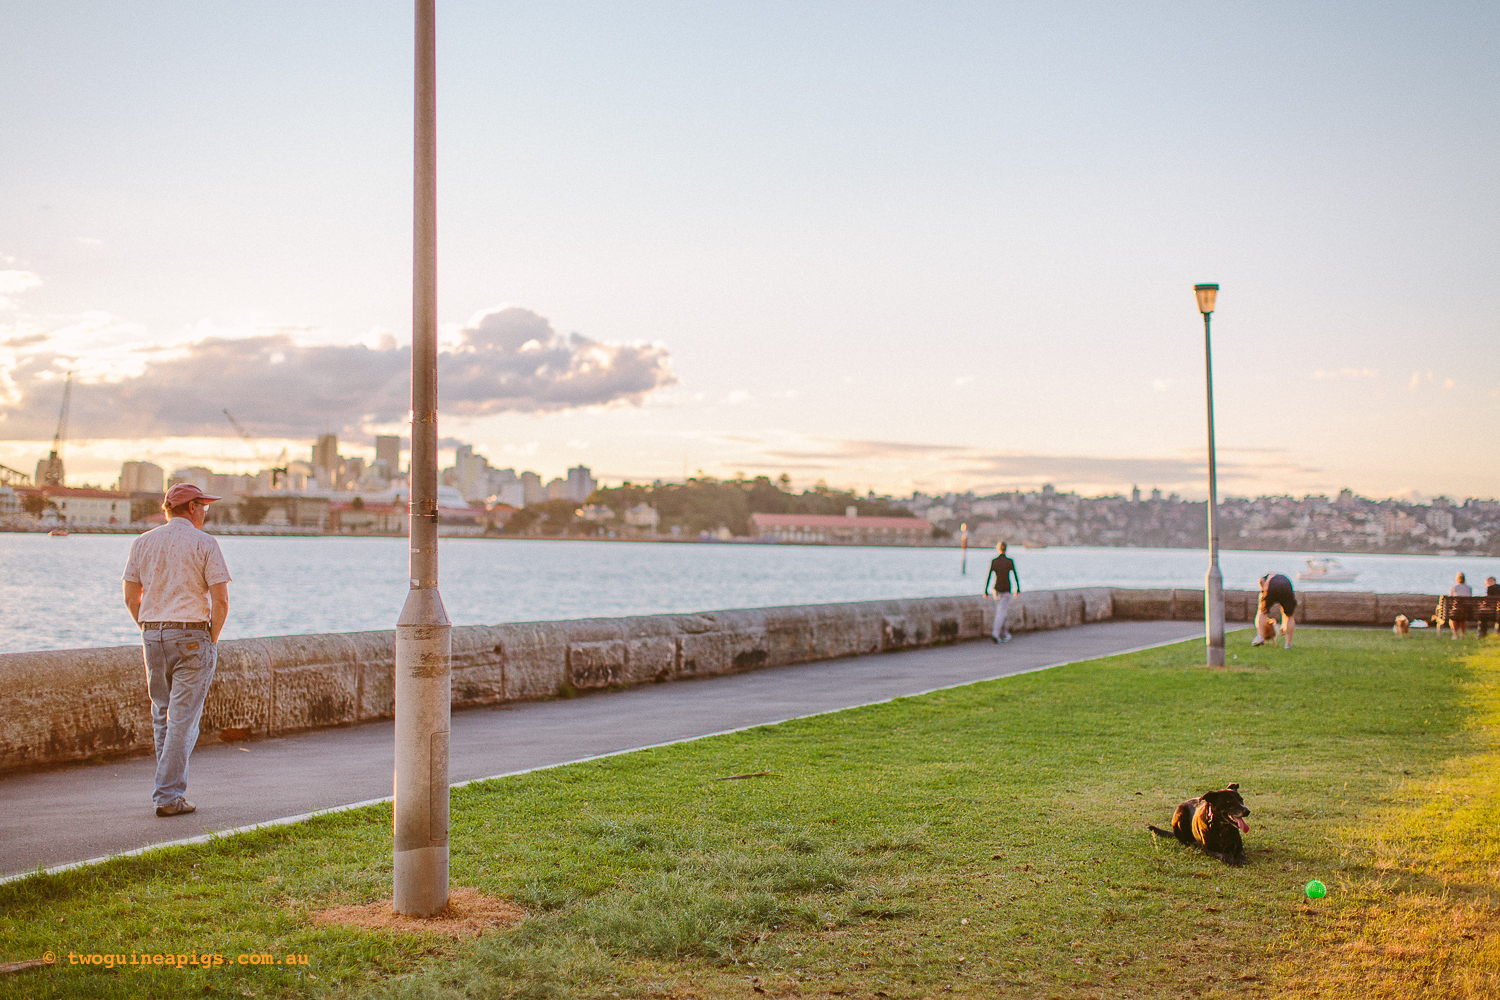 twoguineapigs_rushcutters_bay_winter_sunset_landscapes_1500-8.jpg